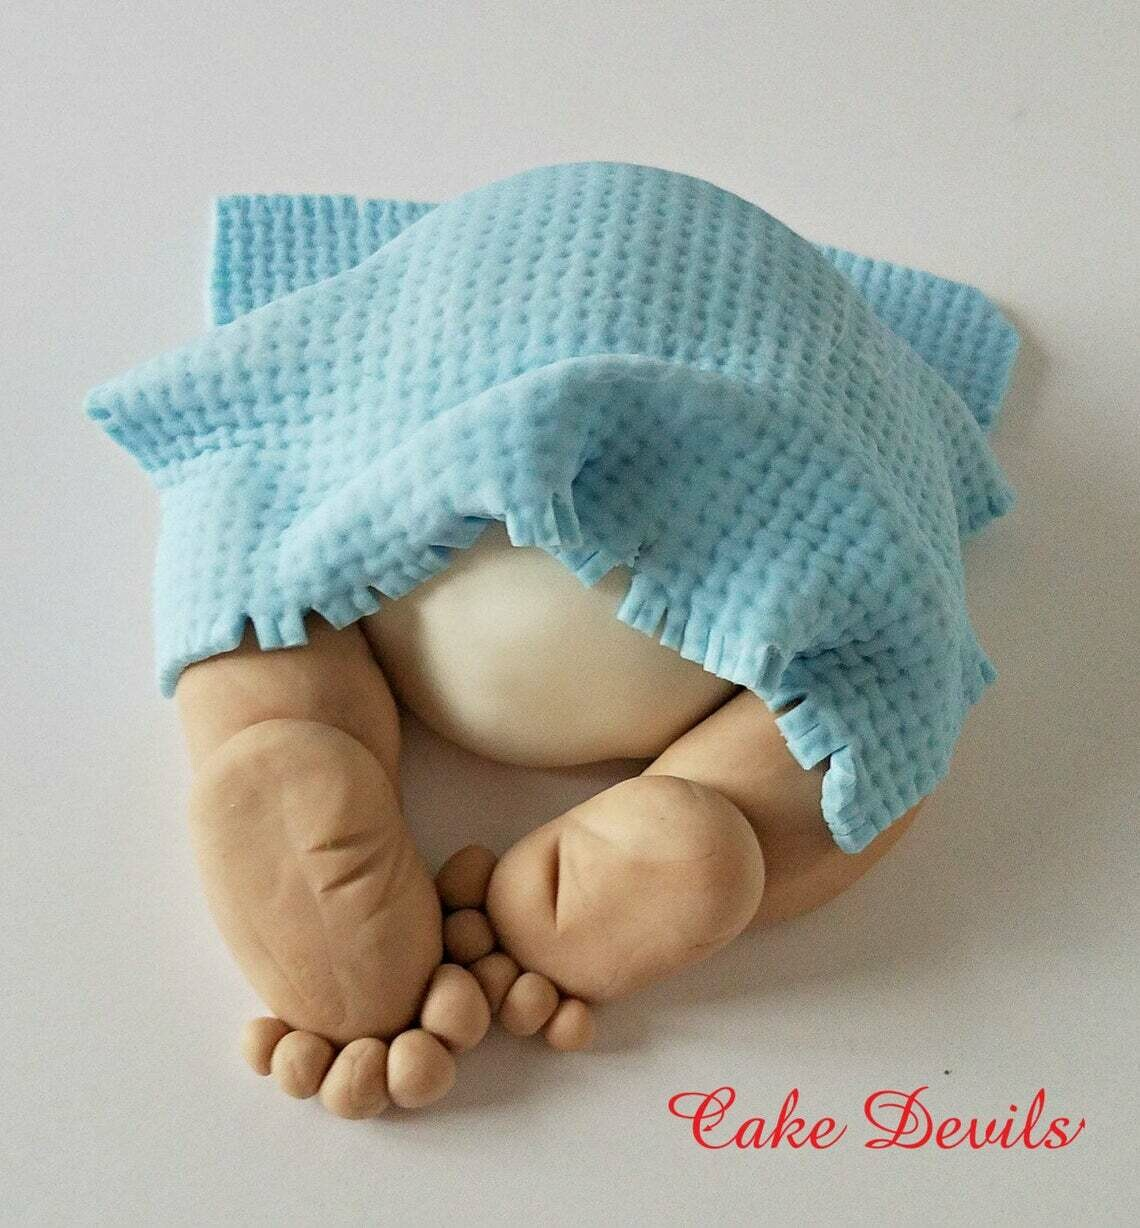 Mini Baby Butt Baby Shower Cake Topper - Perfect for a smaller baby shower Cake!